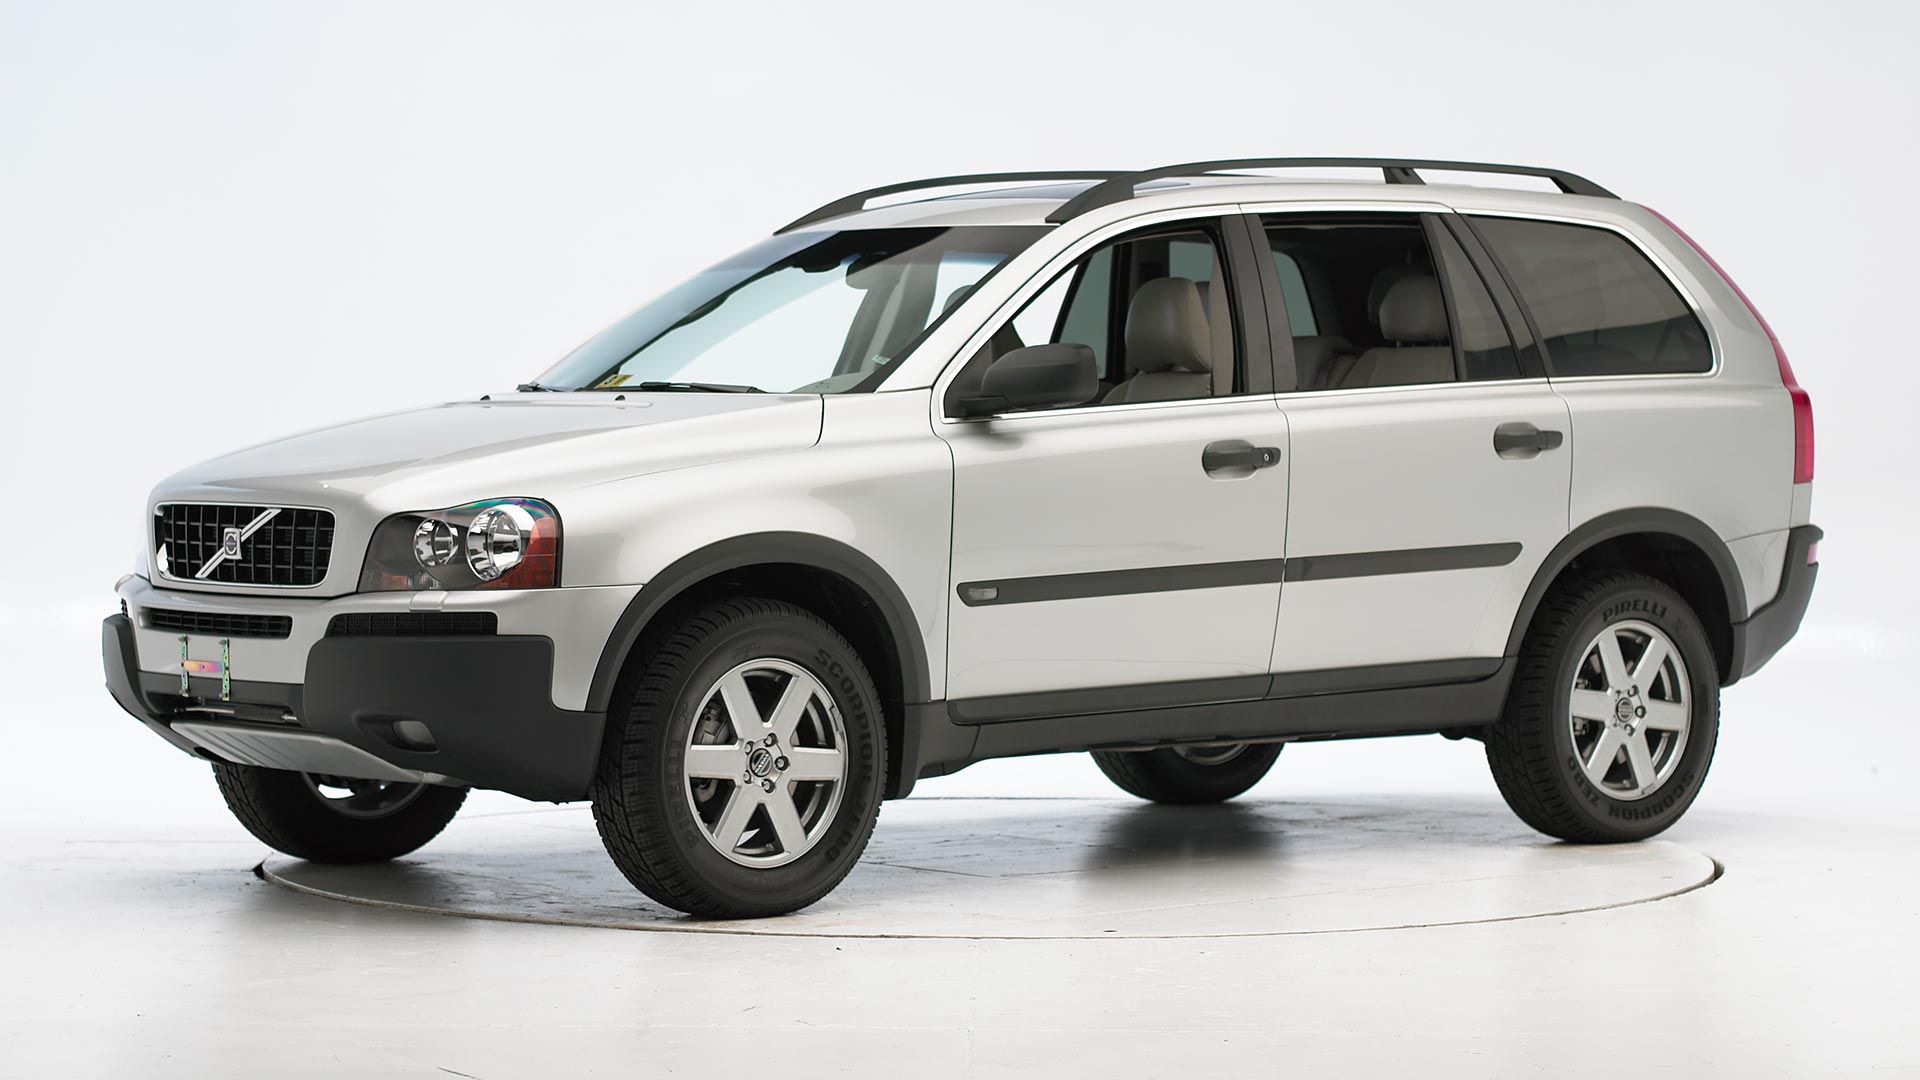 2007 Volvo XC90 4-door SUV